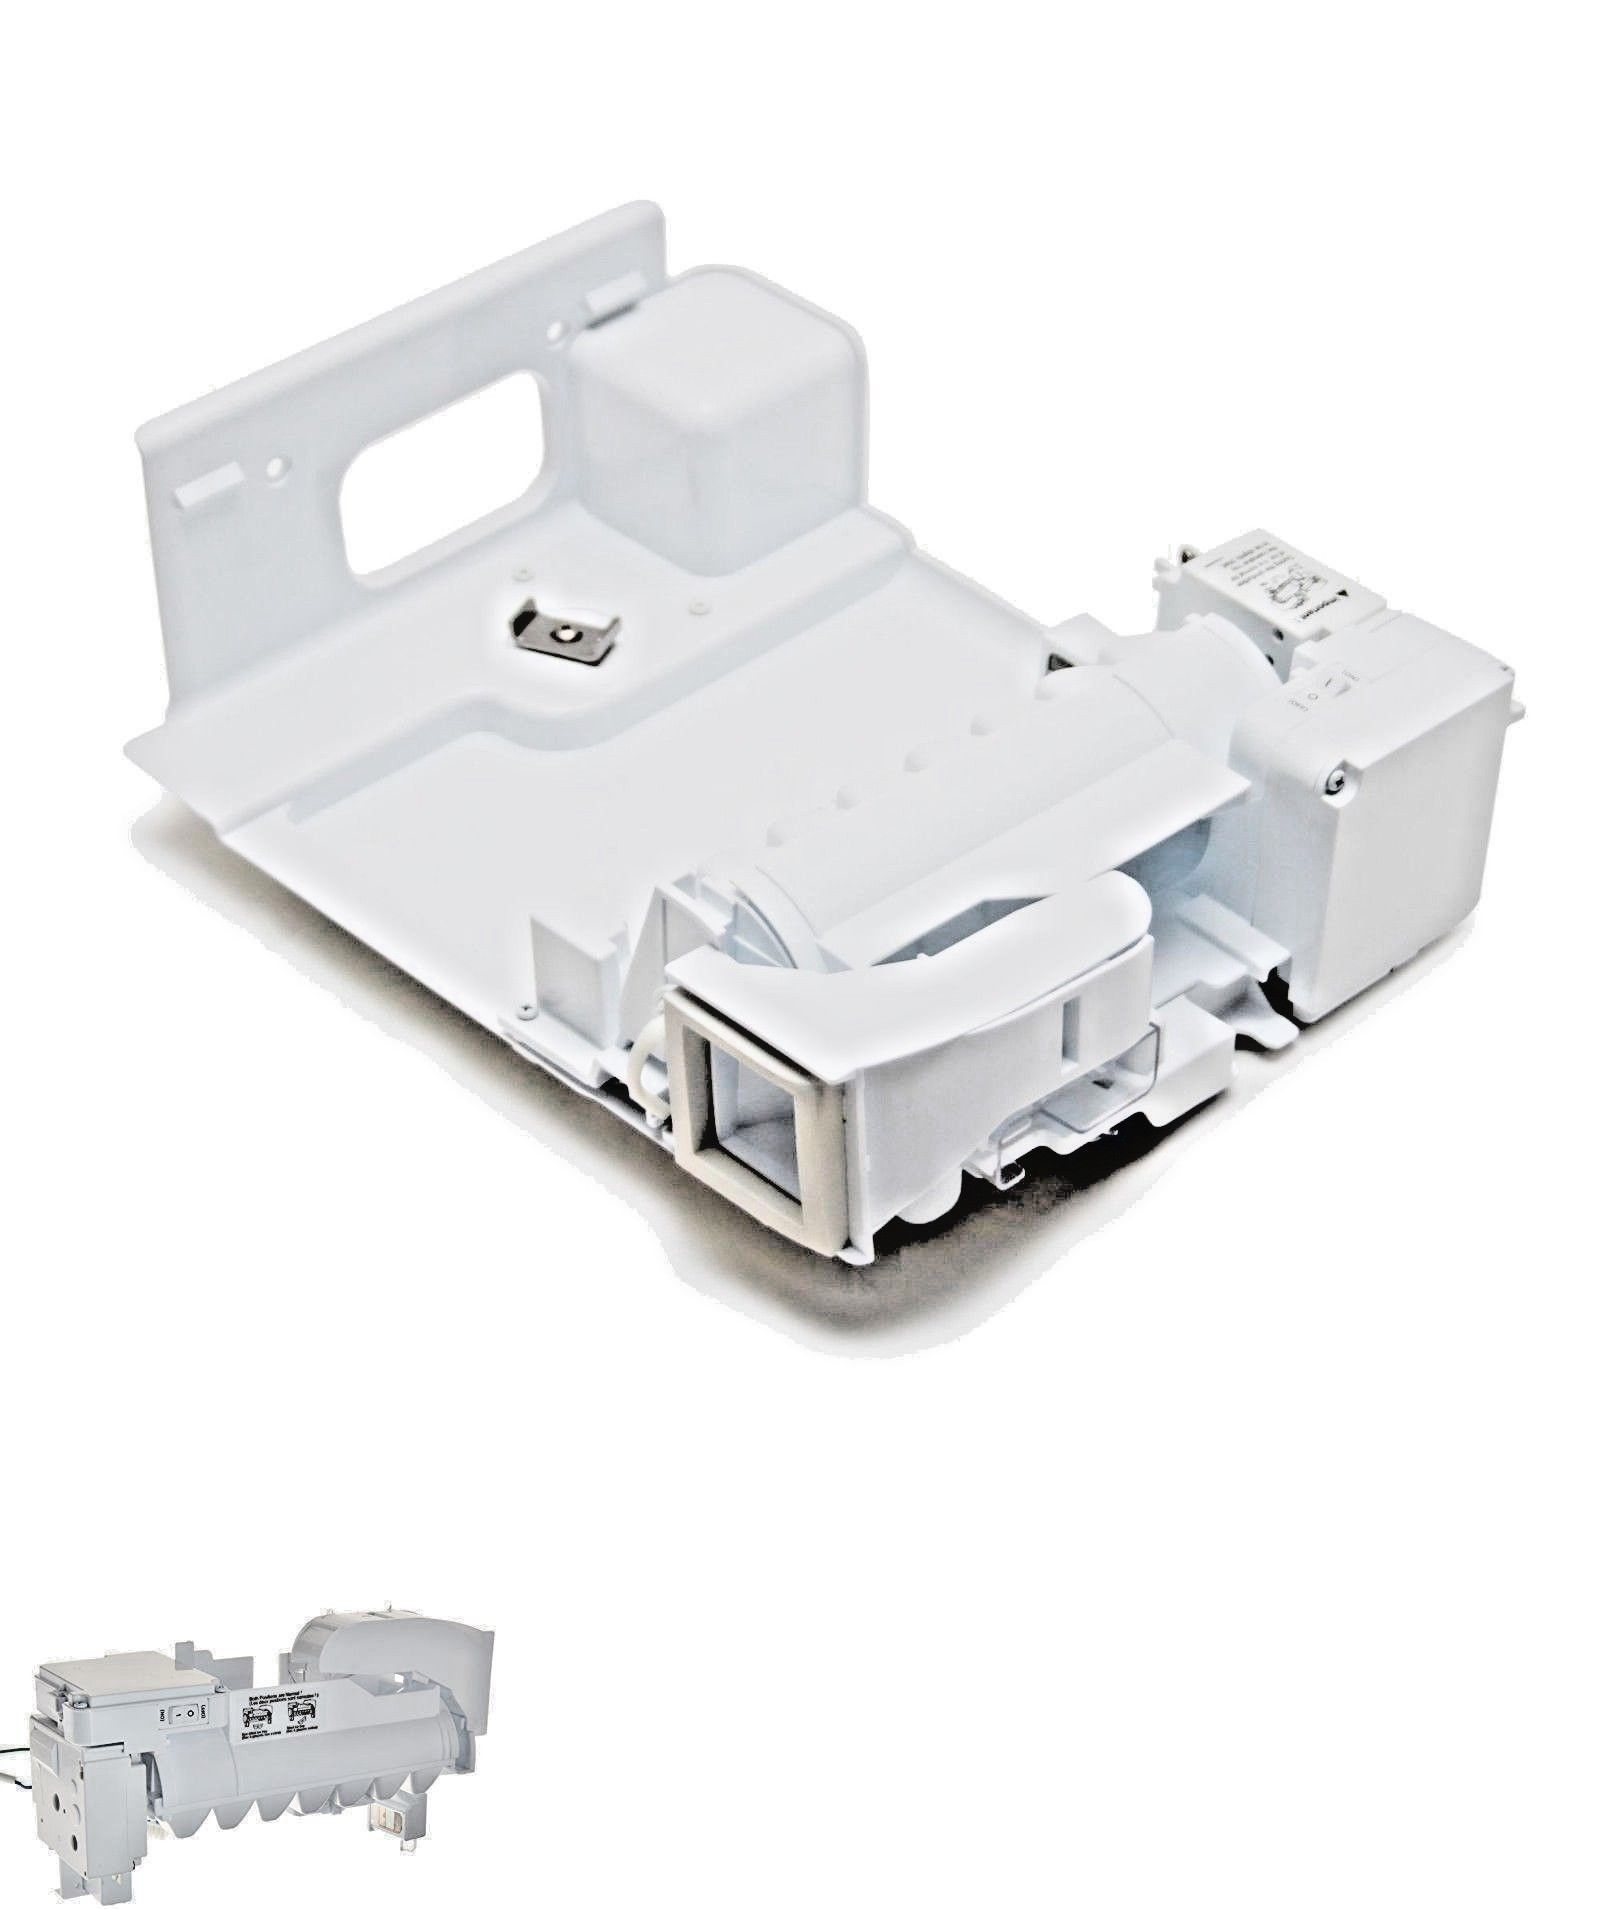 parts and accessories 184666 lg aeq73110210 refrigerator ice maker assembly kit with free bonus buy it now only 129 29 on ebay parts accessories  [ 1600 x 1909 Pixel ]